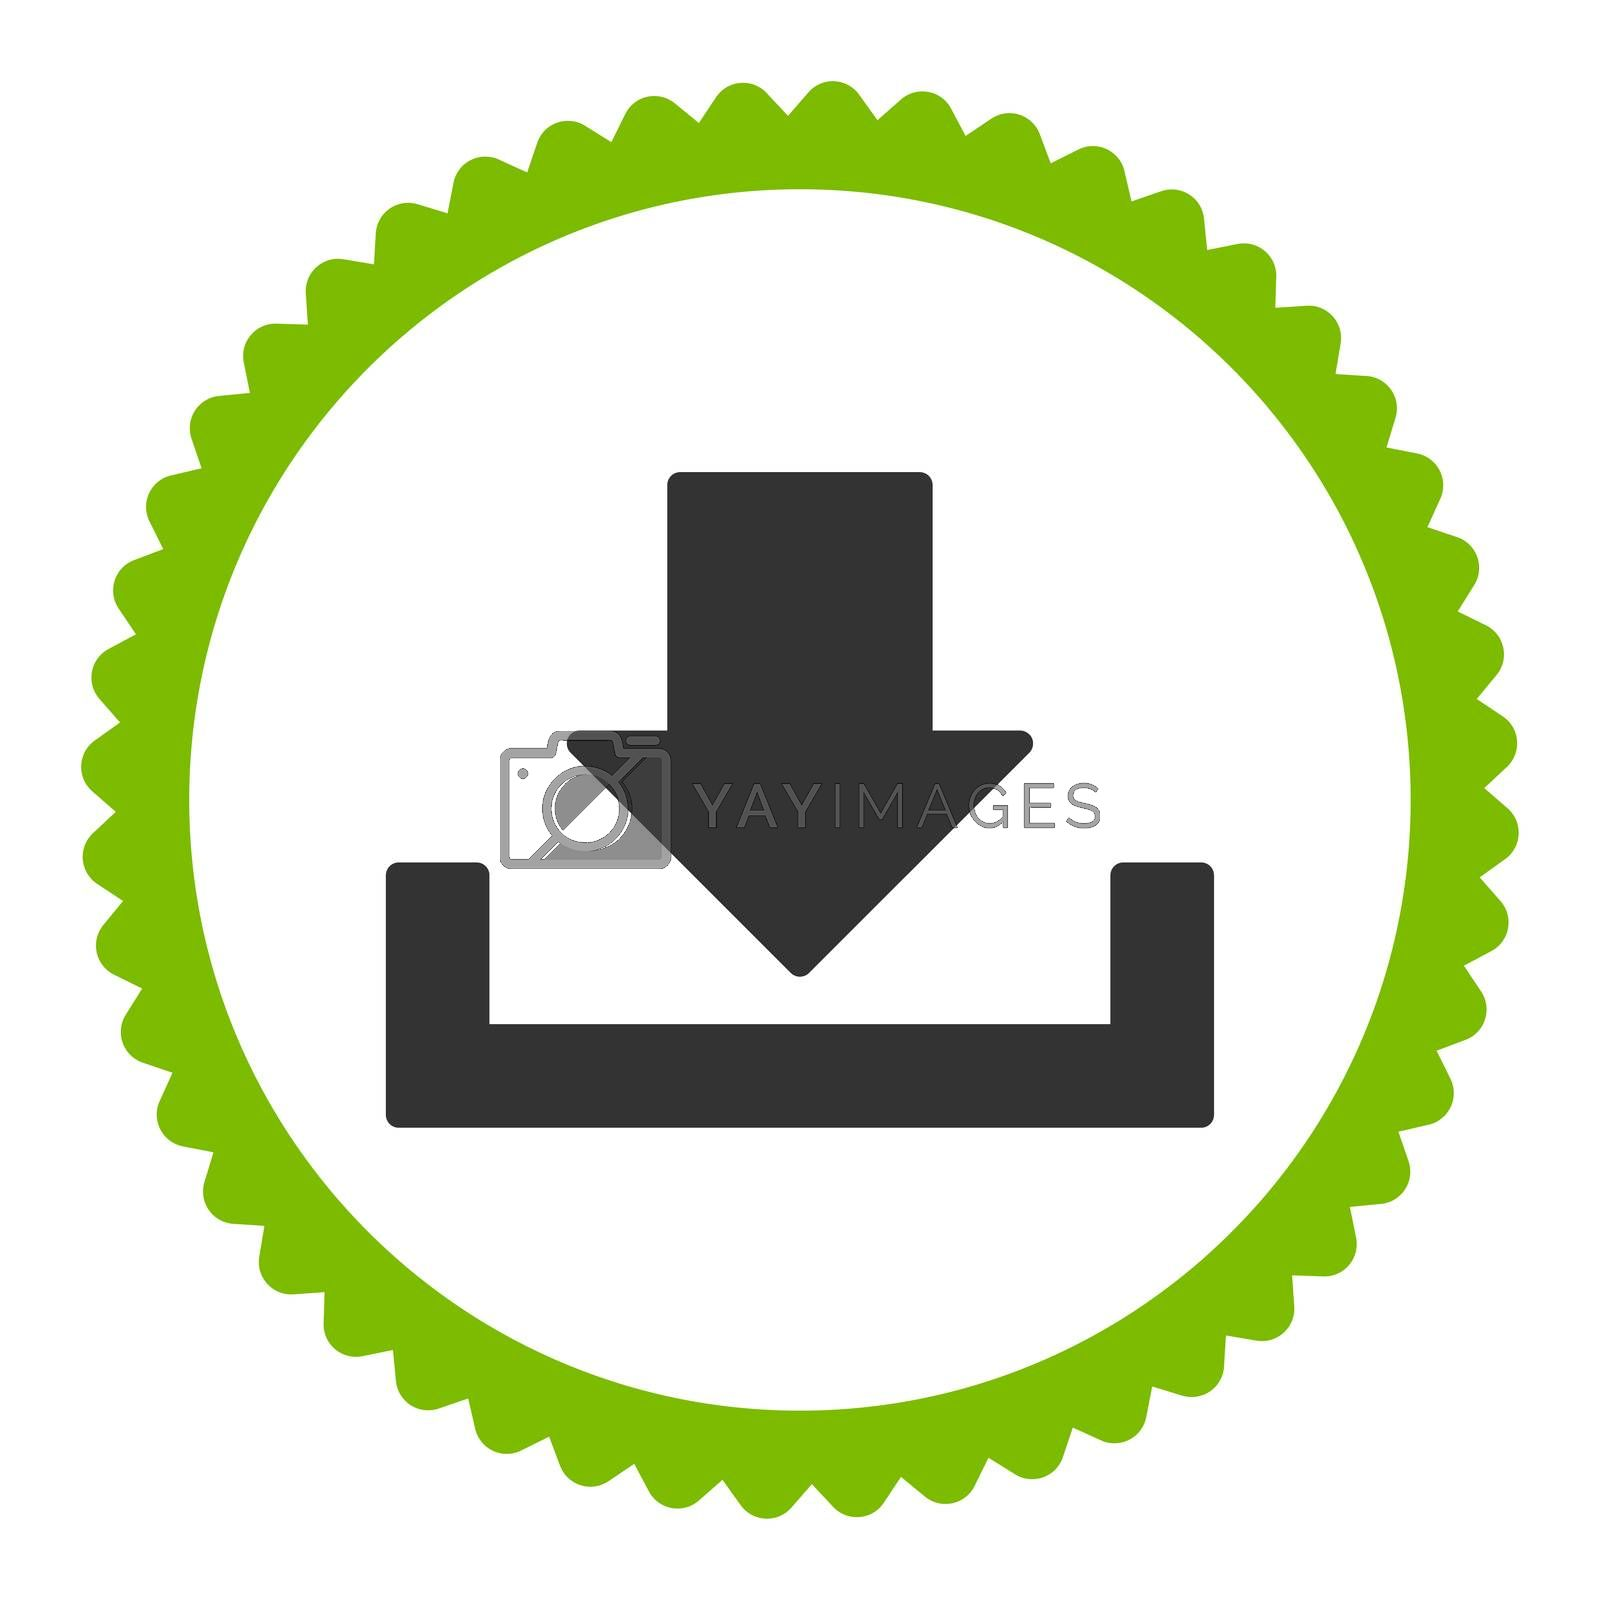 Download flat eco green and gray colors round stamp icon by Aha-Soft